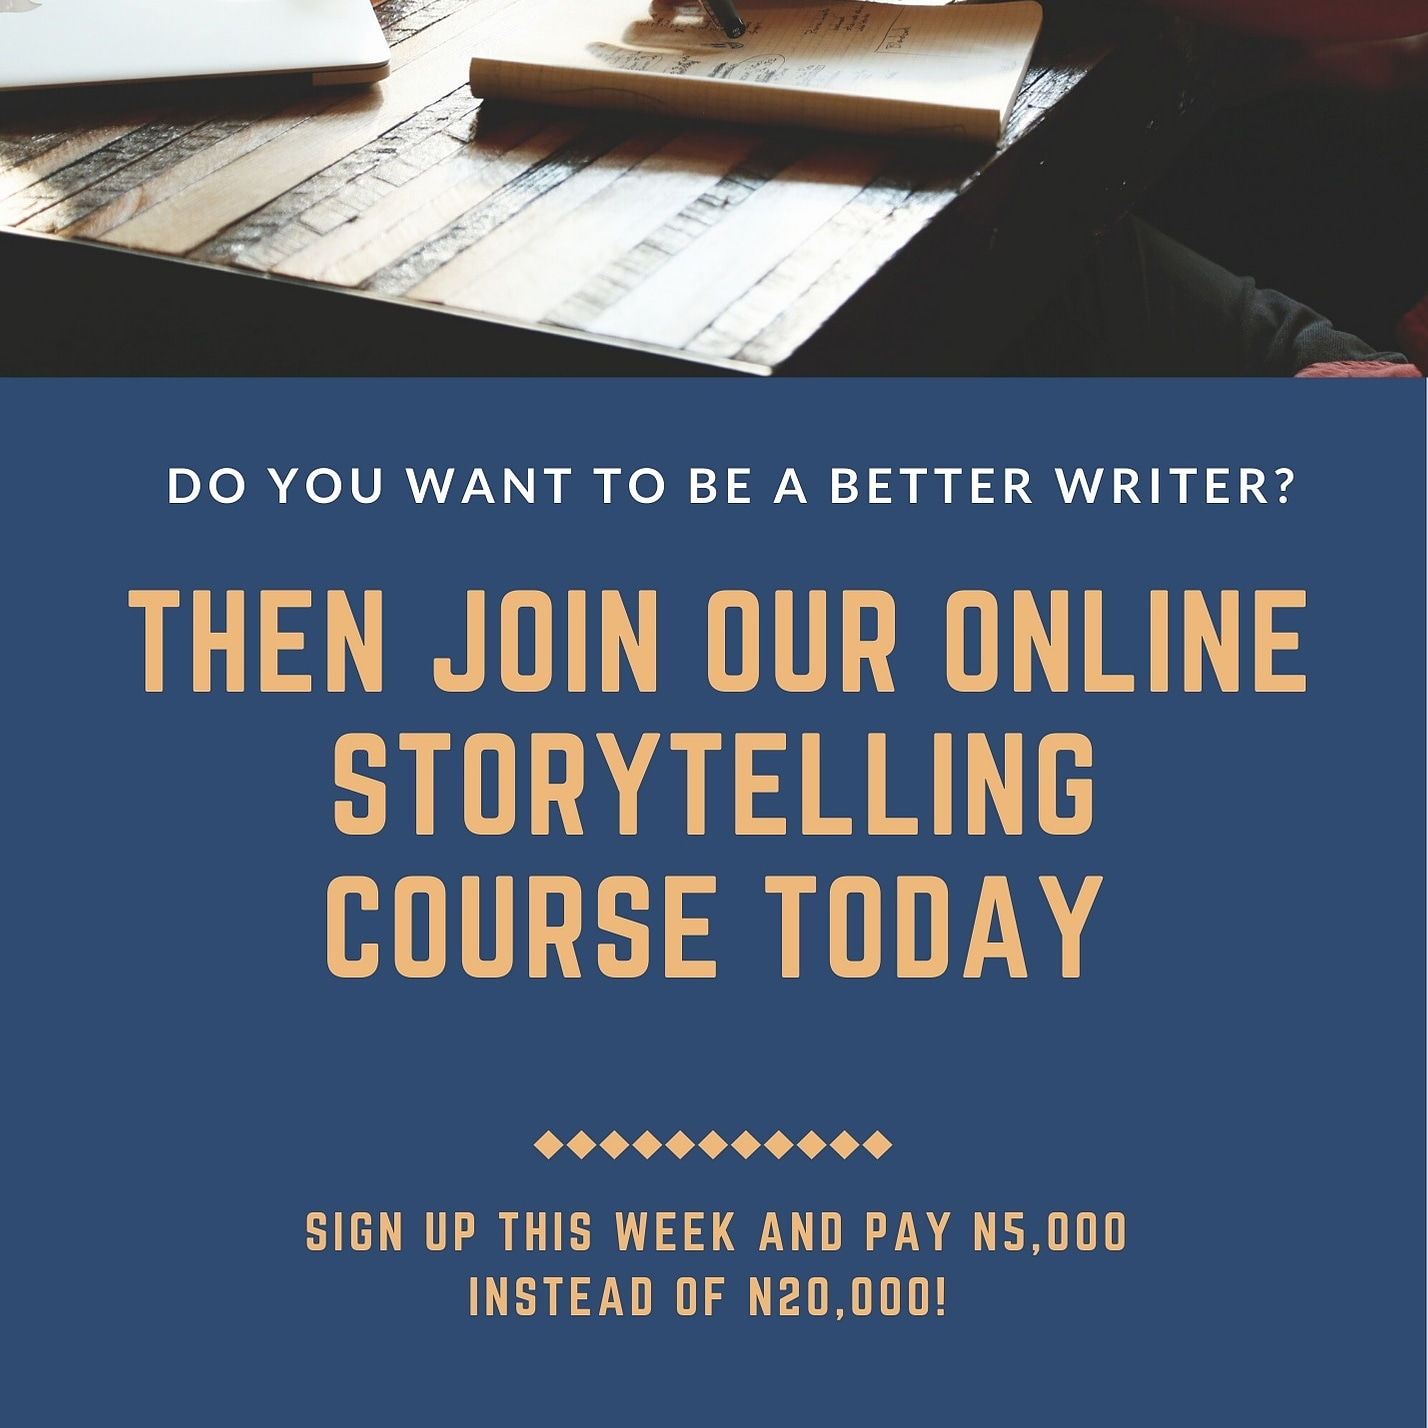 Registration for Online Storytelling Course